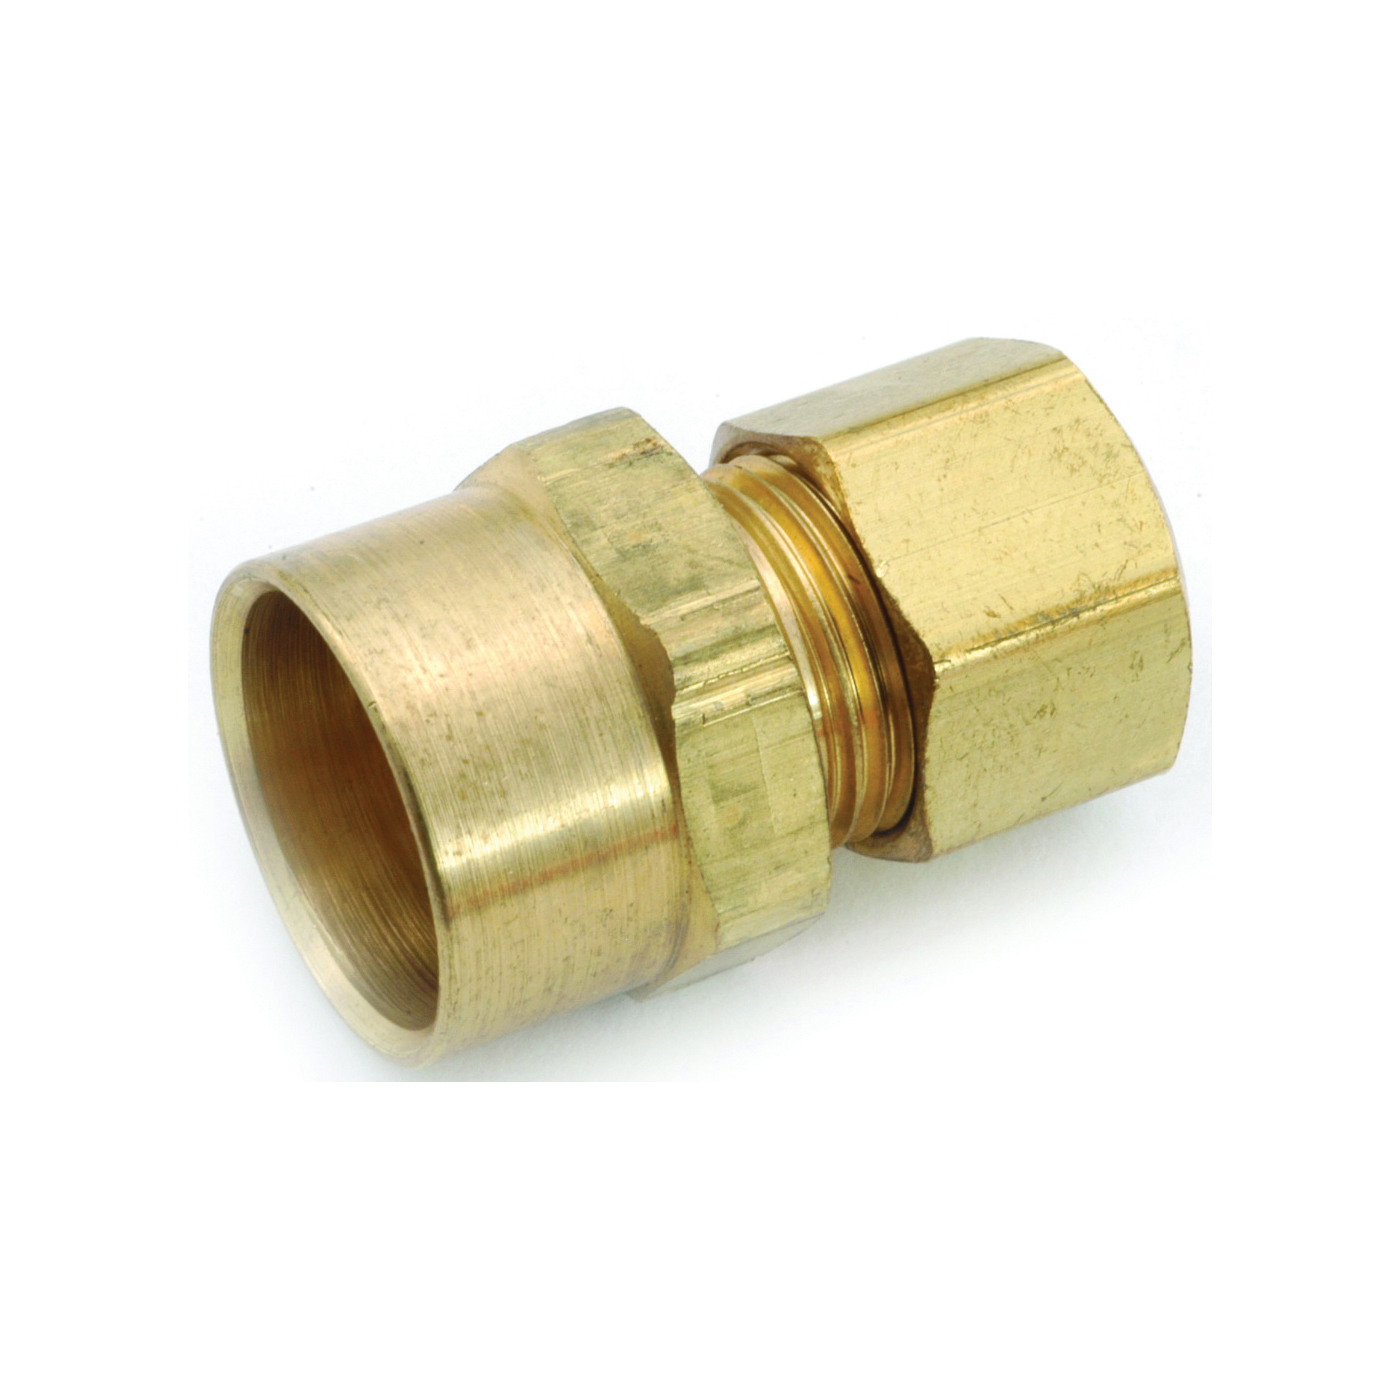 Picture of Anderson Metals 750086-0610 Tube Adapter, 3/8 x 5/8 in, Sweat x Compression, Brass